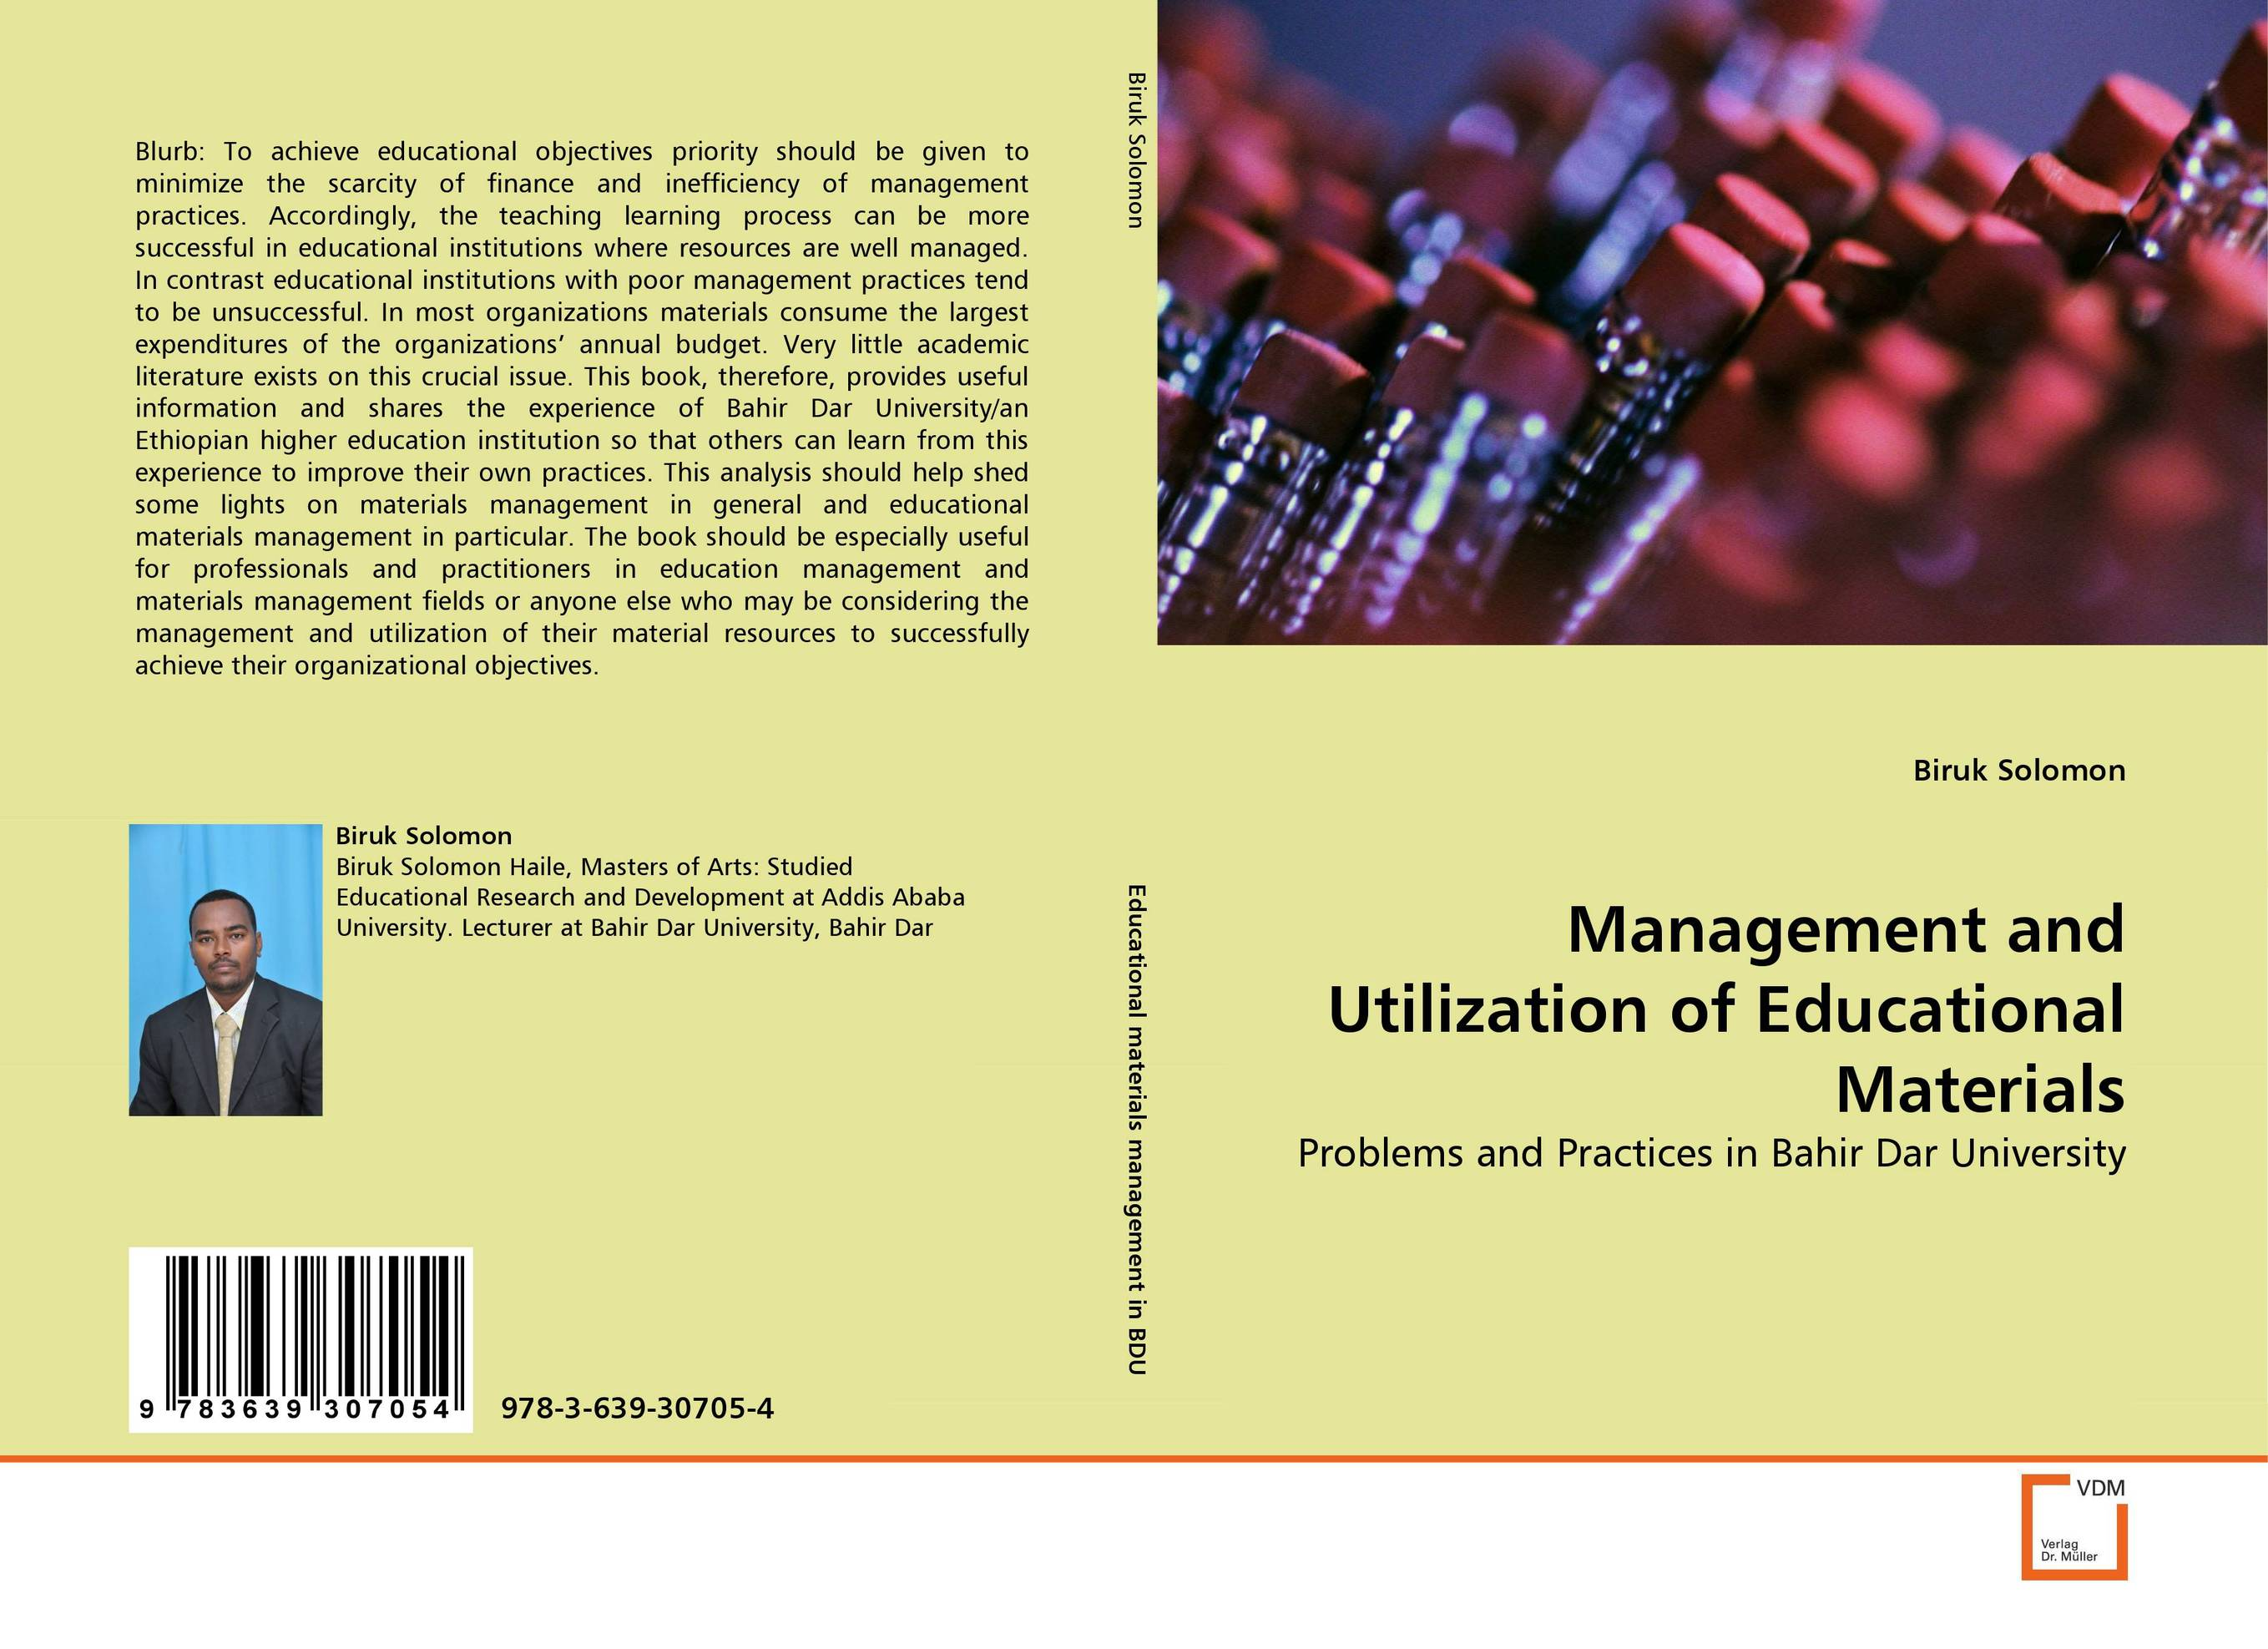 Management and Utilization of Educational Materials neera sharma education and educational management in kautilya s arthshastra